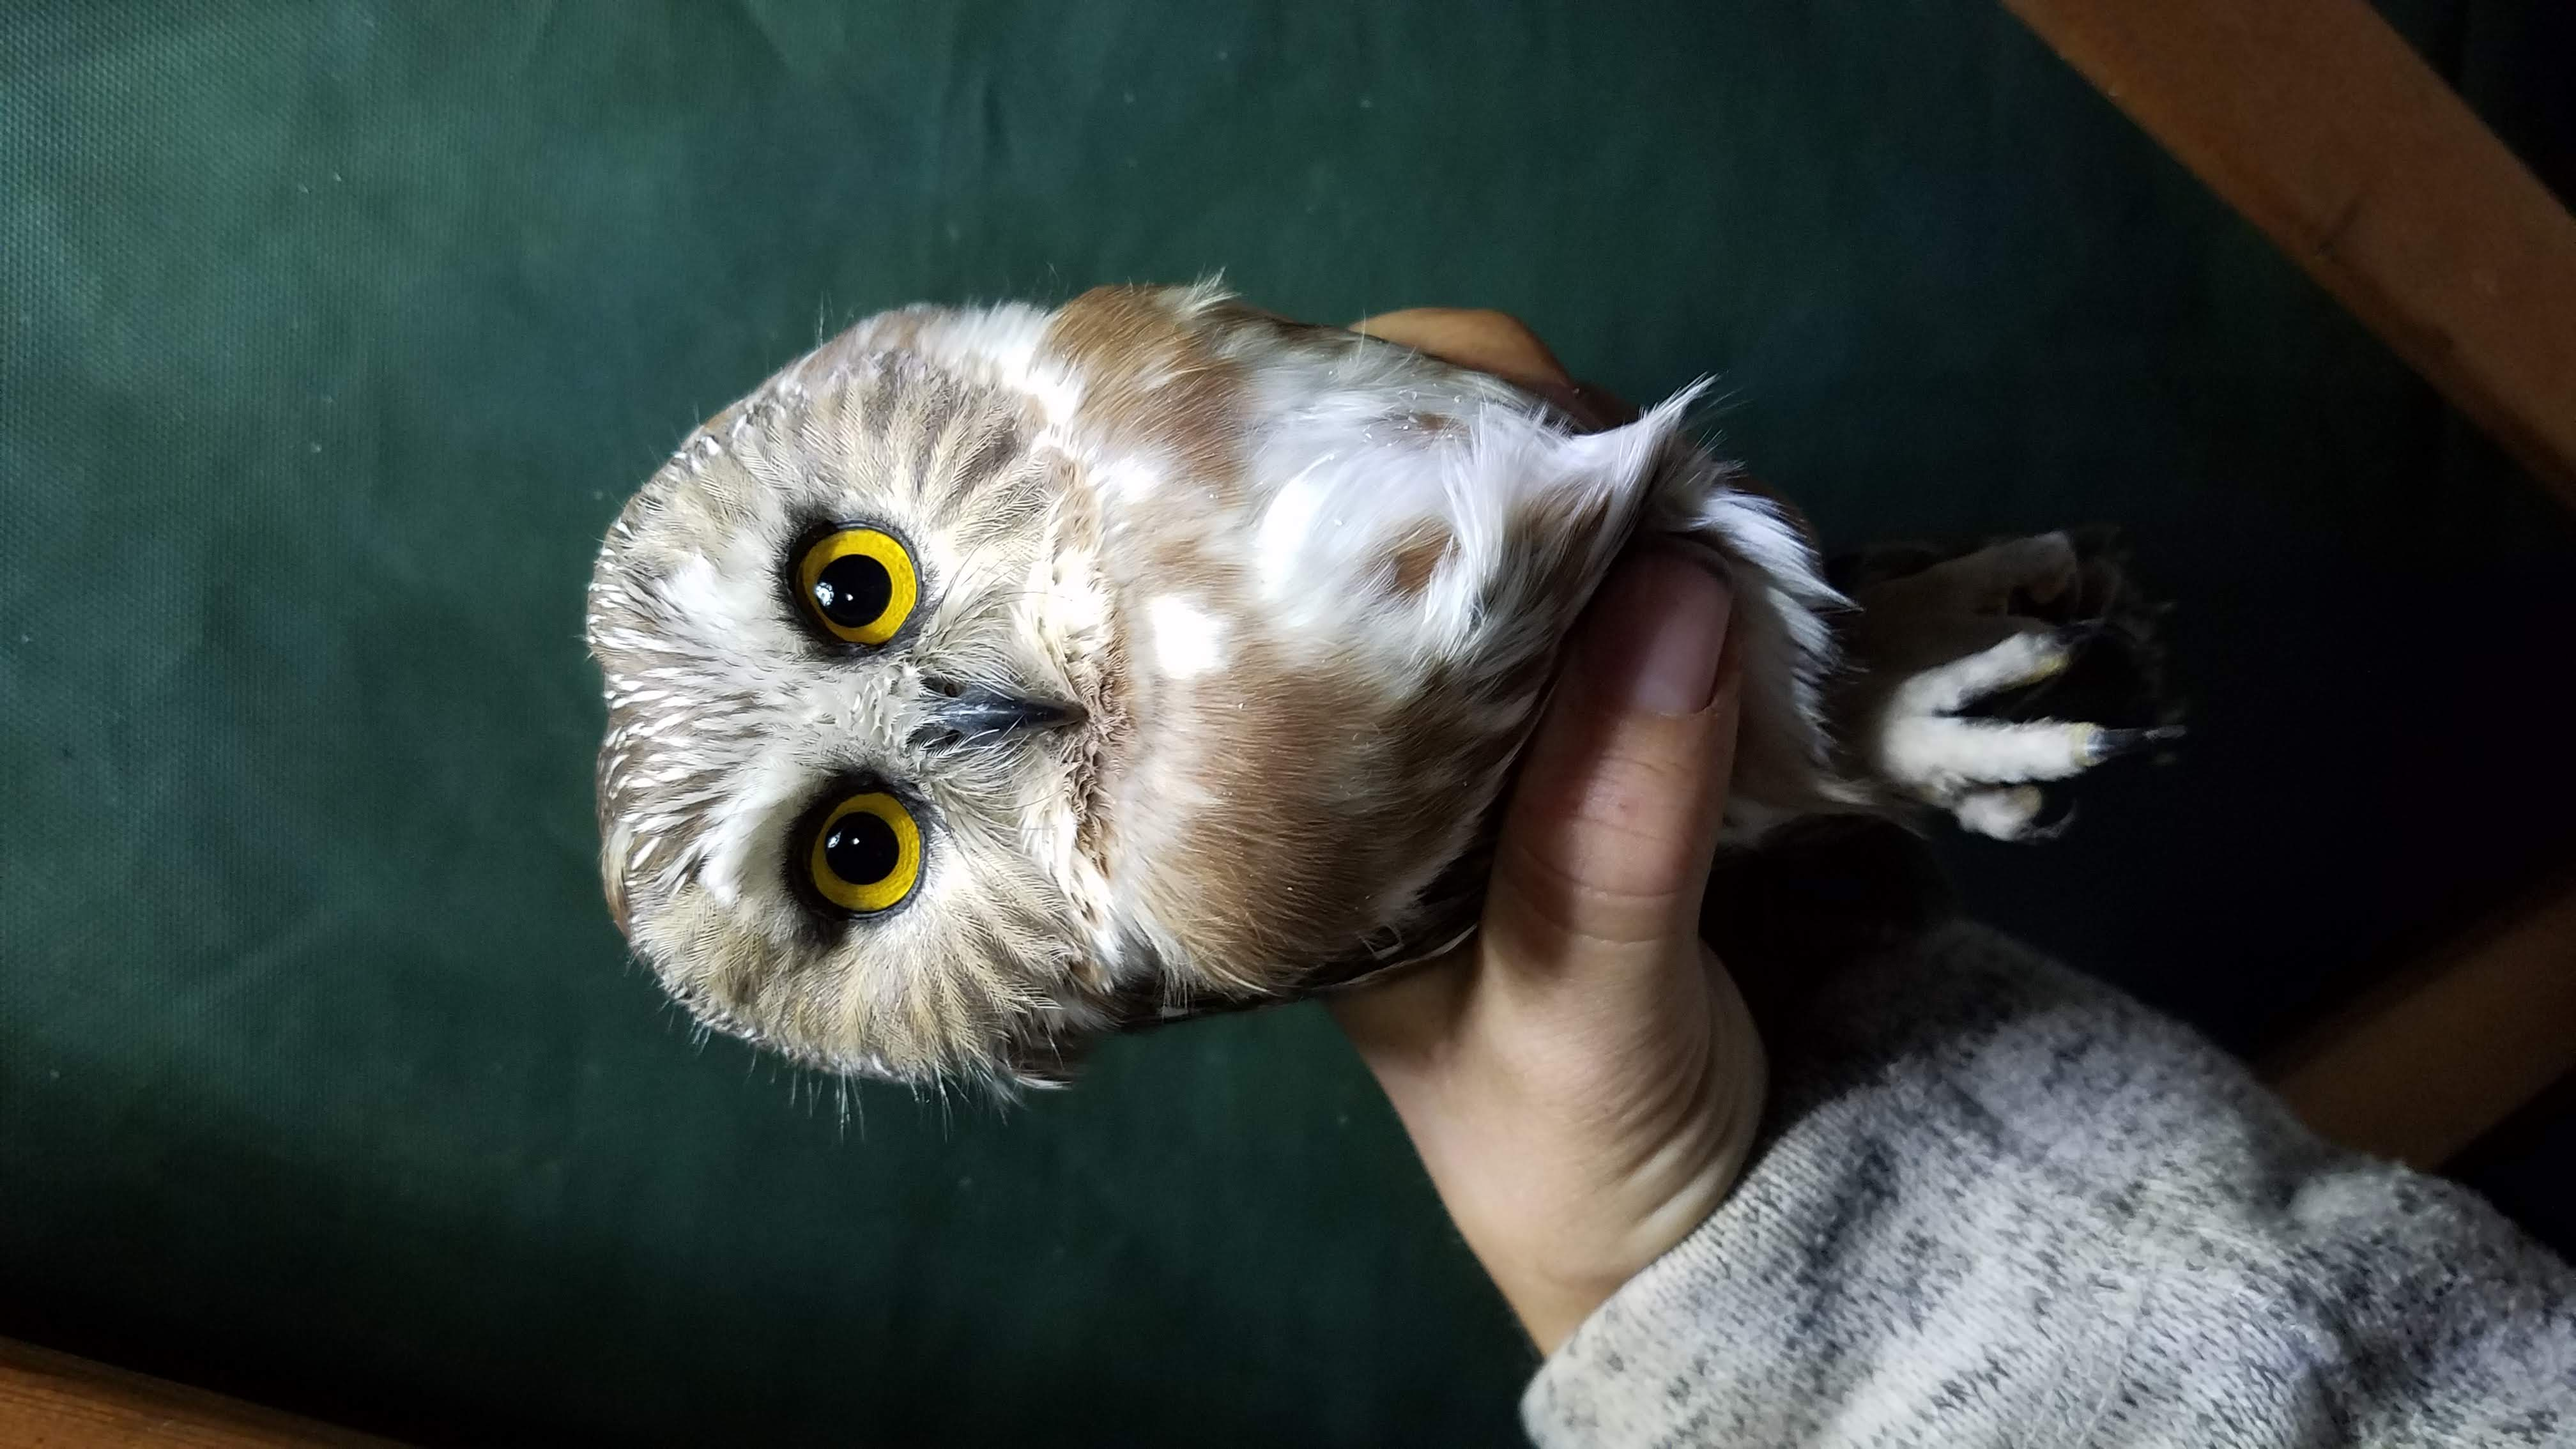 a small owl with bright yellow eyes looks at the camera. Held gently by a biologist's hand